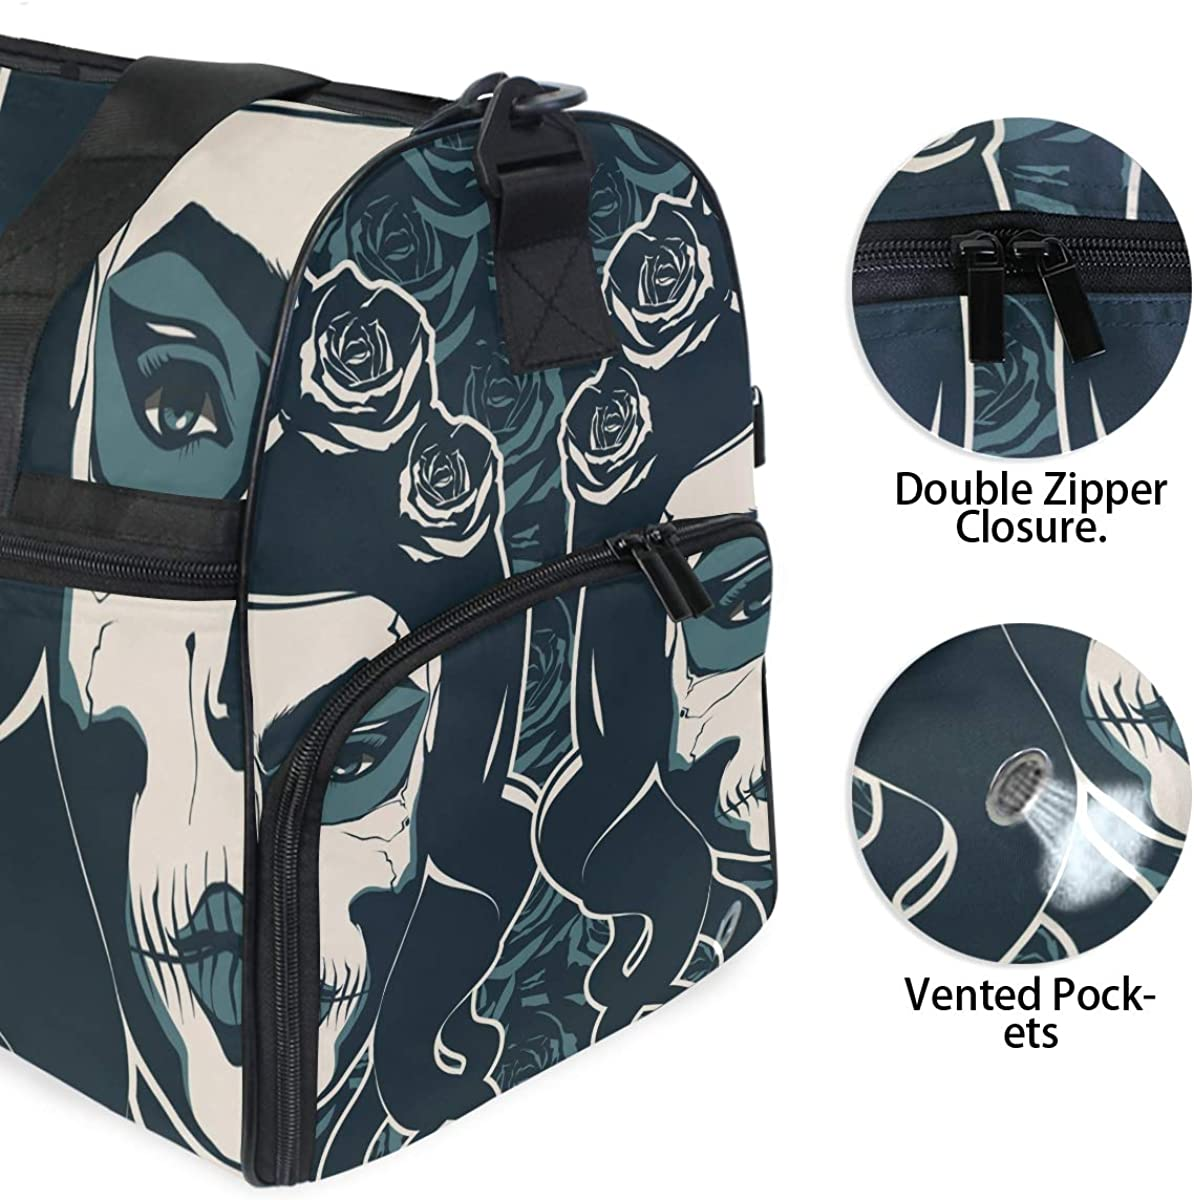 Large Capacity Travel Bag Sugar Skull Girl Day Of The Dead Gym Bag for Men Women With Shoe Compartment Sports Bag